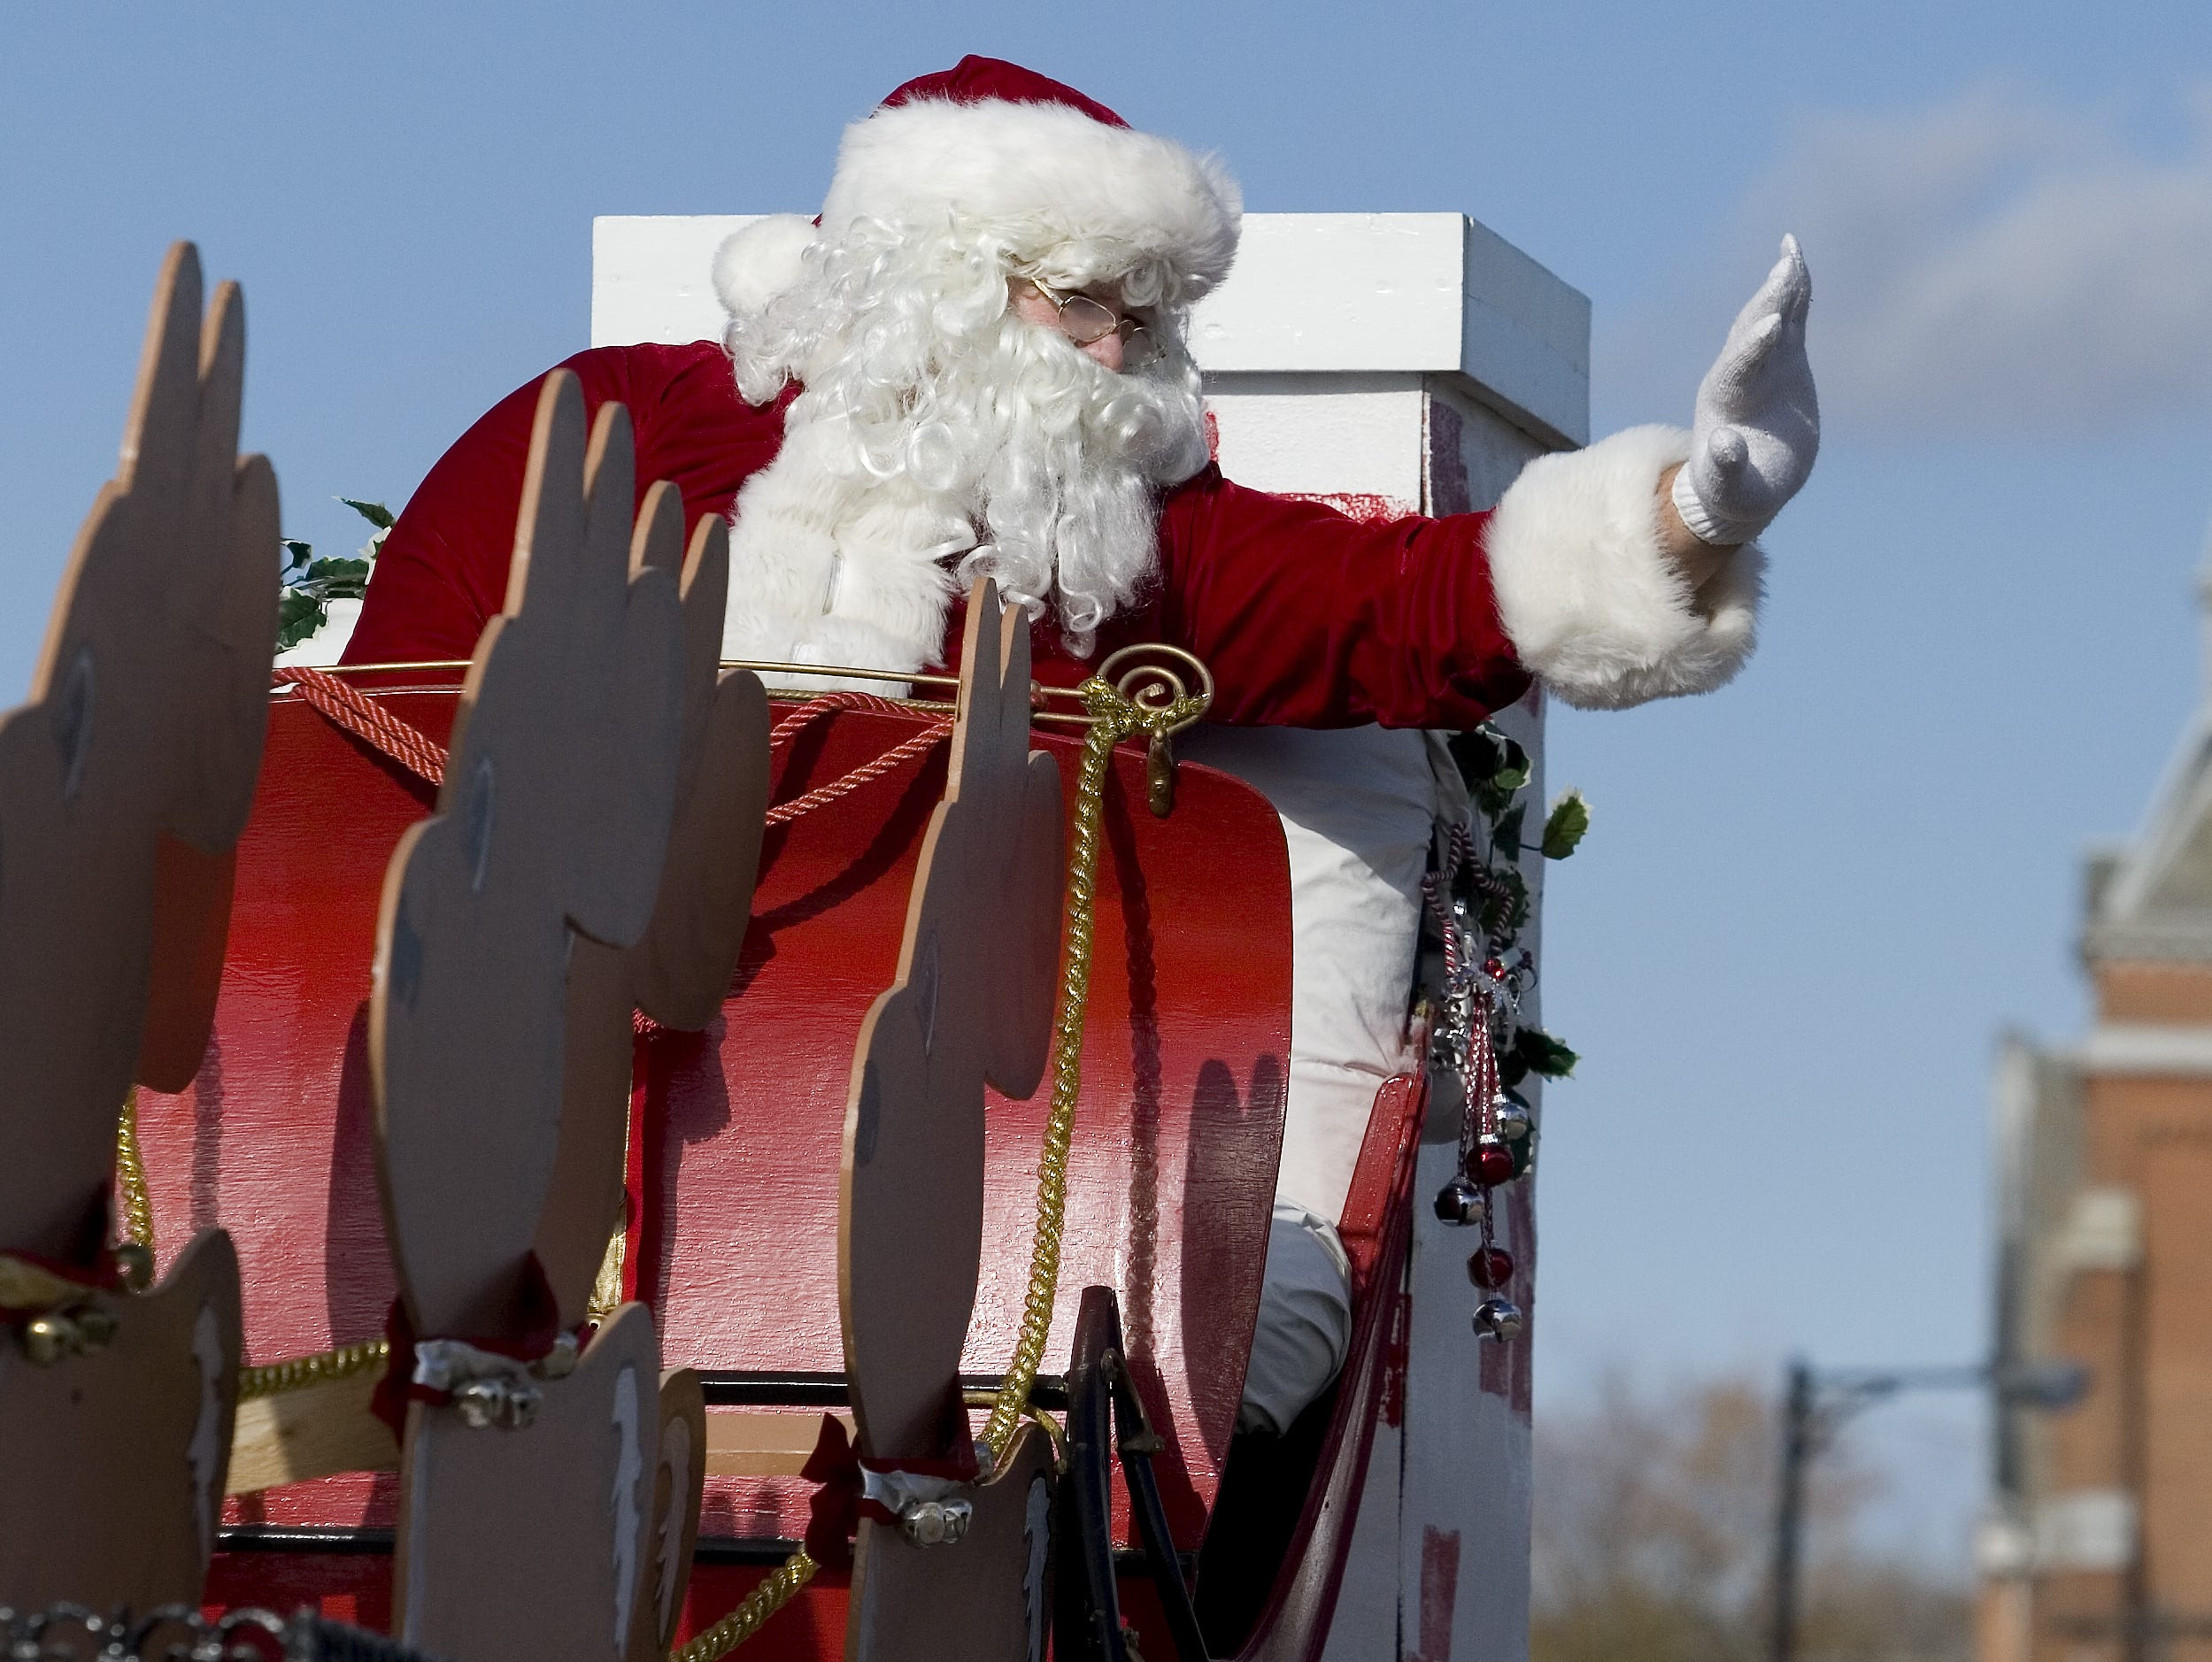 Santa Claus, whose float is bringing up the rear of the parade, waves to spectators lining North Main Street in 2007.